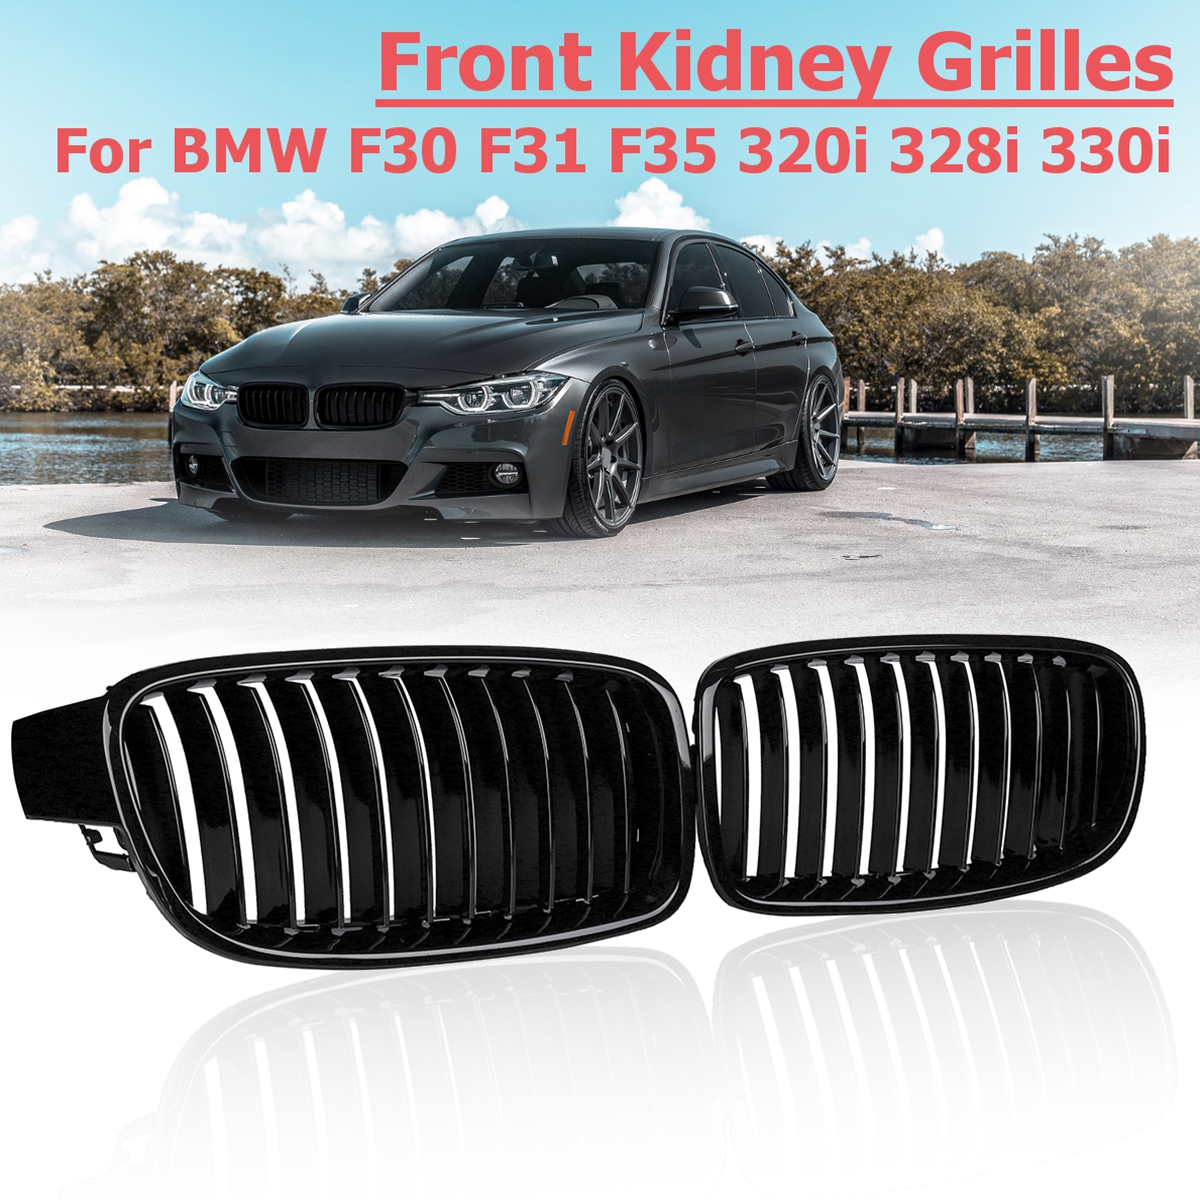 1 Pair Gloss Black Front Kidney Grilles Grill Car Styling Racing Grills replacement Grilles for BMW